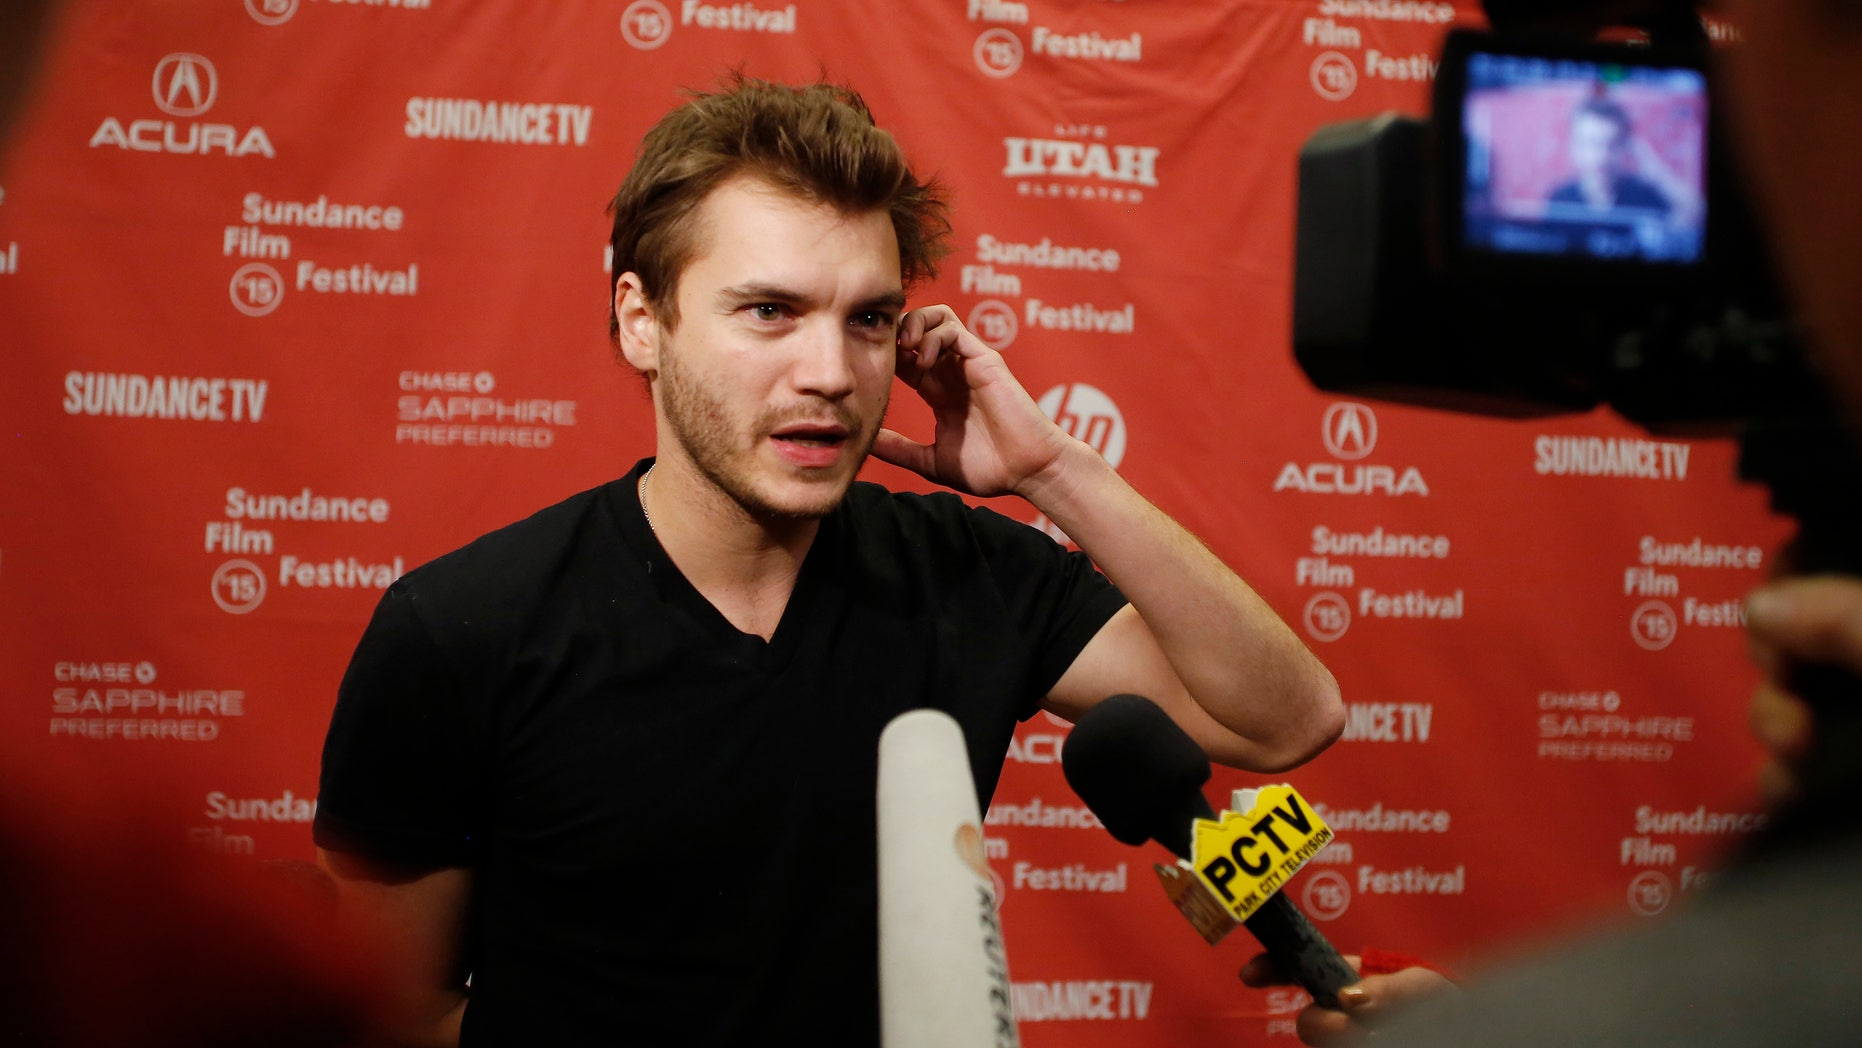 """Actor Emile Hirsch attends the premiere of the film """"Ten Thousand Saints"""" at the Sundance Film Festival in Park City, Utah, January 23, 2015.  REUTERS/Jim Urquhart (UNITED STATES - Tags: ENTERTAINMENT) - RTR4MPHF"""